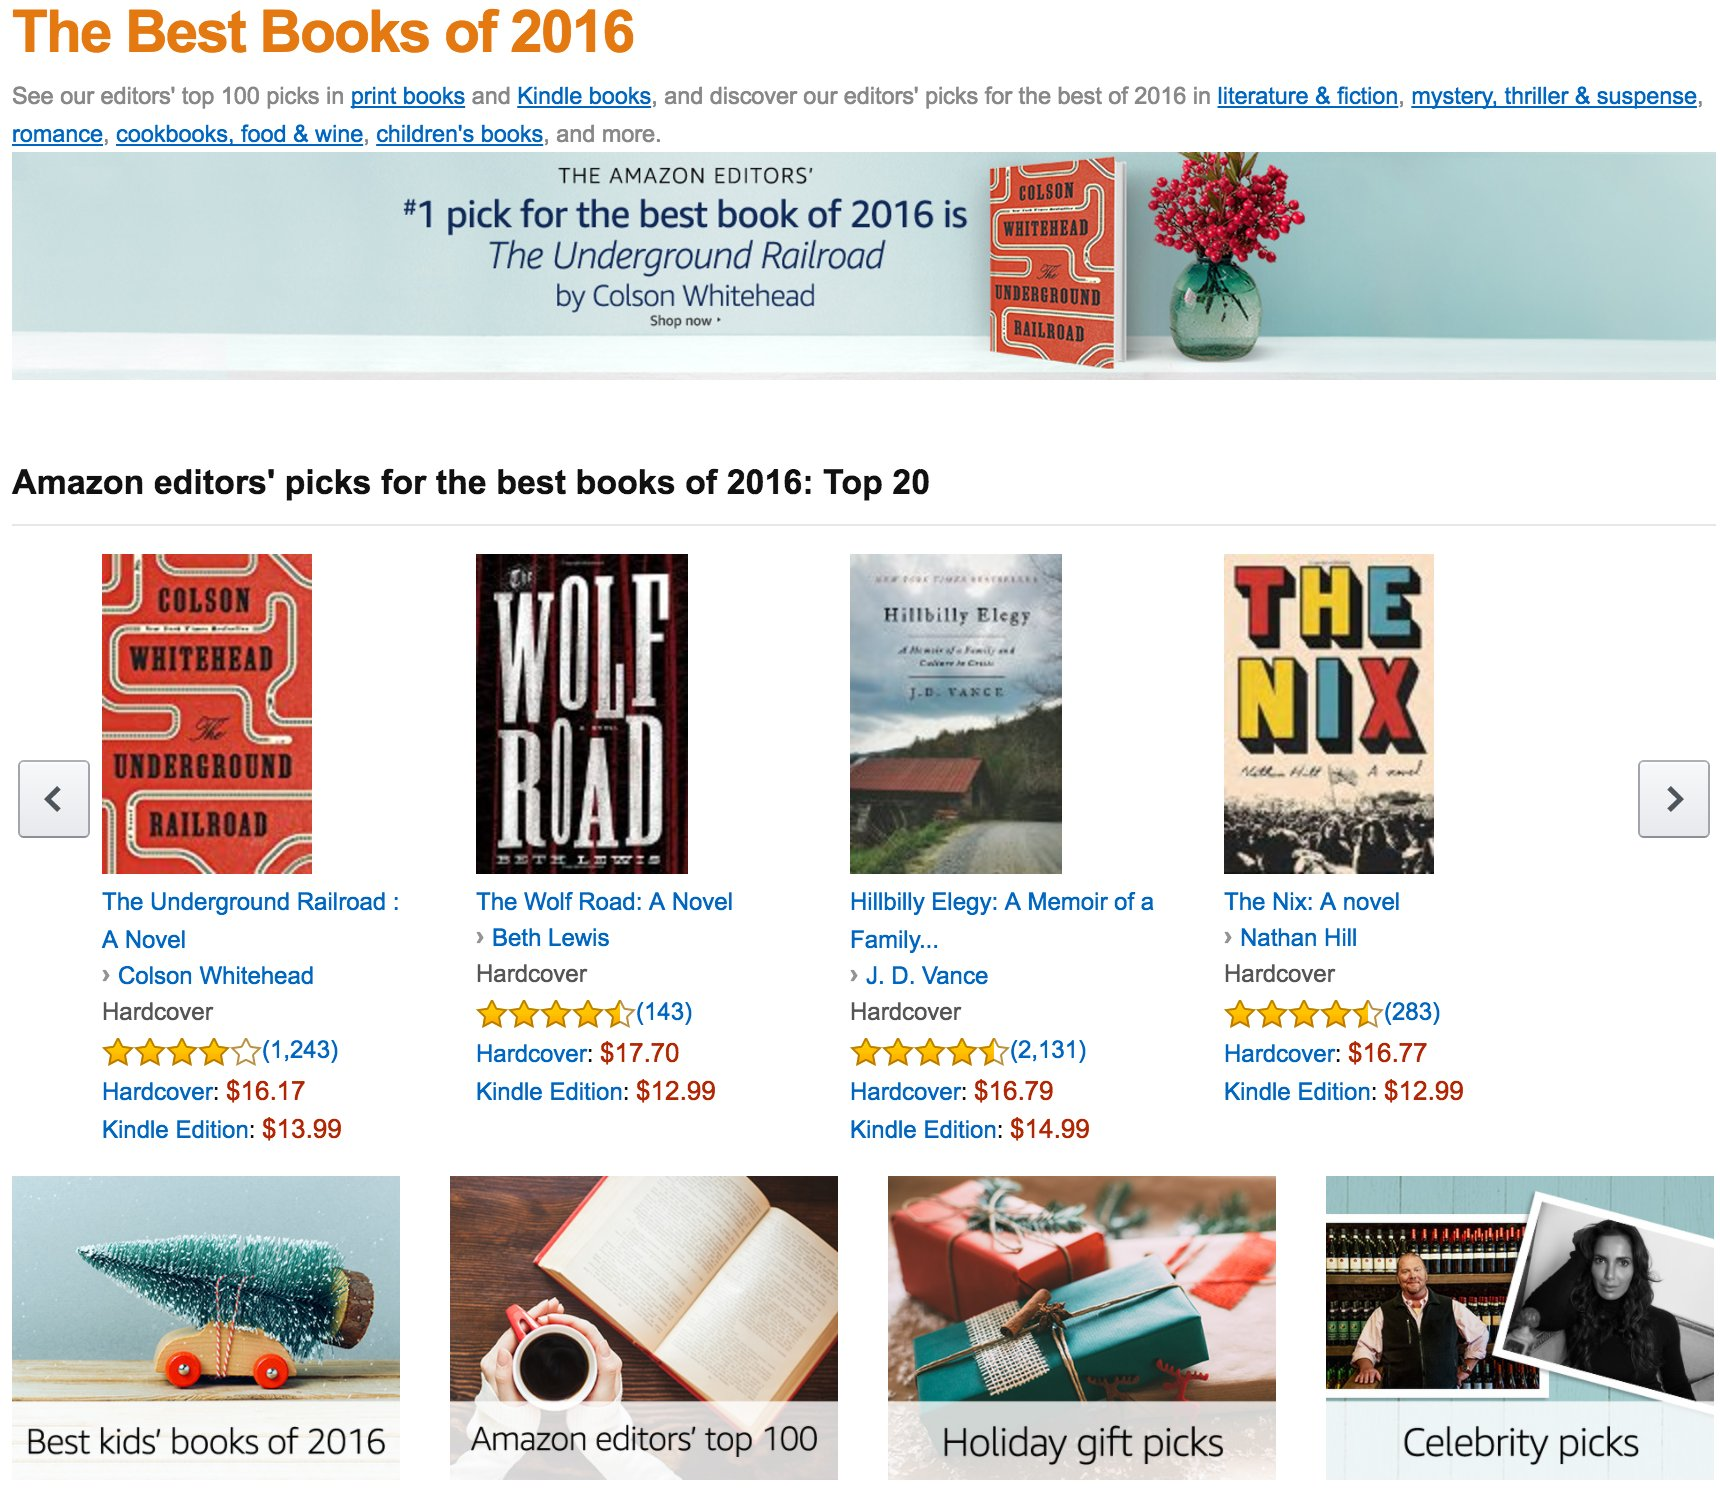 Editors pick popular on web pictures - See The 100 Amazon Editor Picks In Print And Kindle Books Https T Co 3l4pnhvgqq Https T Co P56kyqrscn